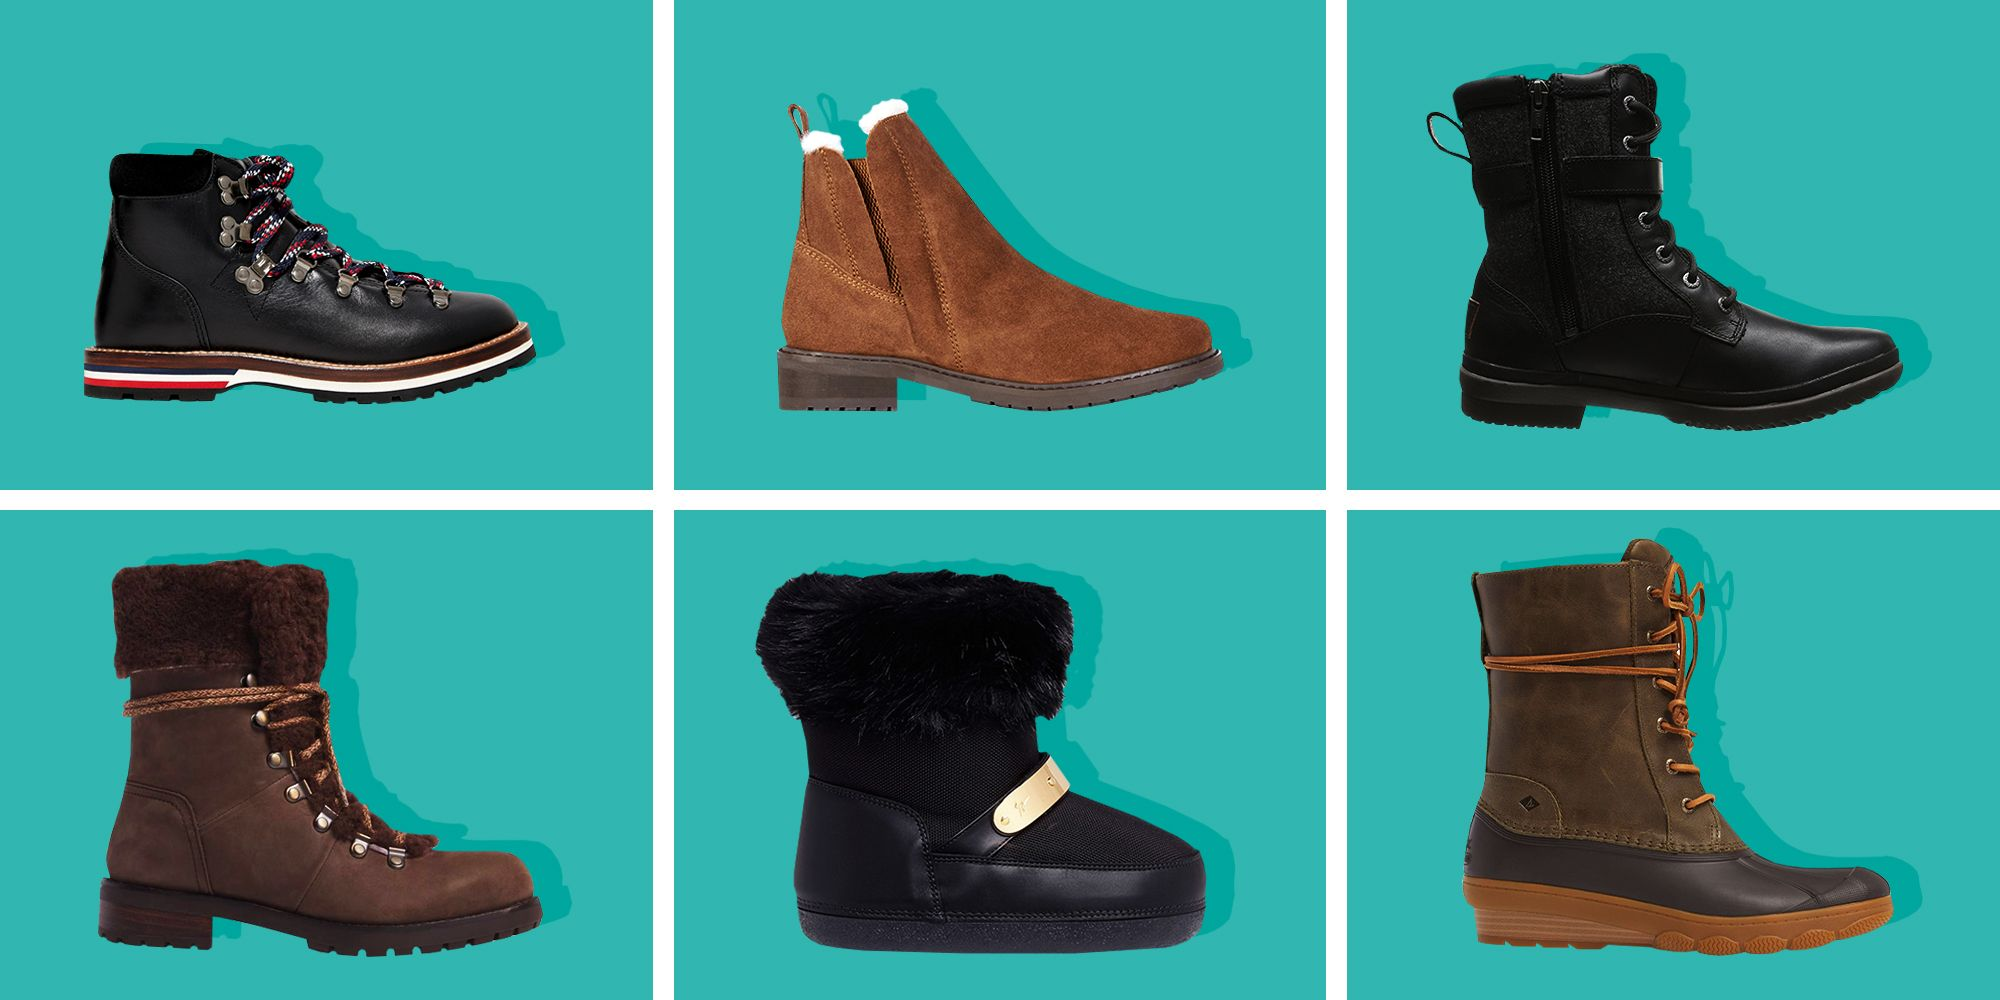 5bcca281276 11 Best Winter Snow Boots for Women in 2018 - Cute and Waterproof ...